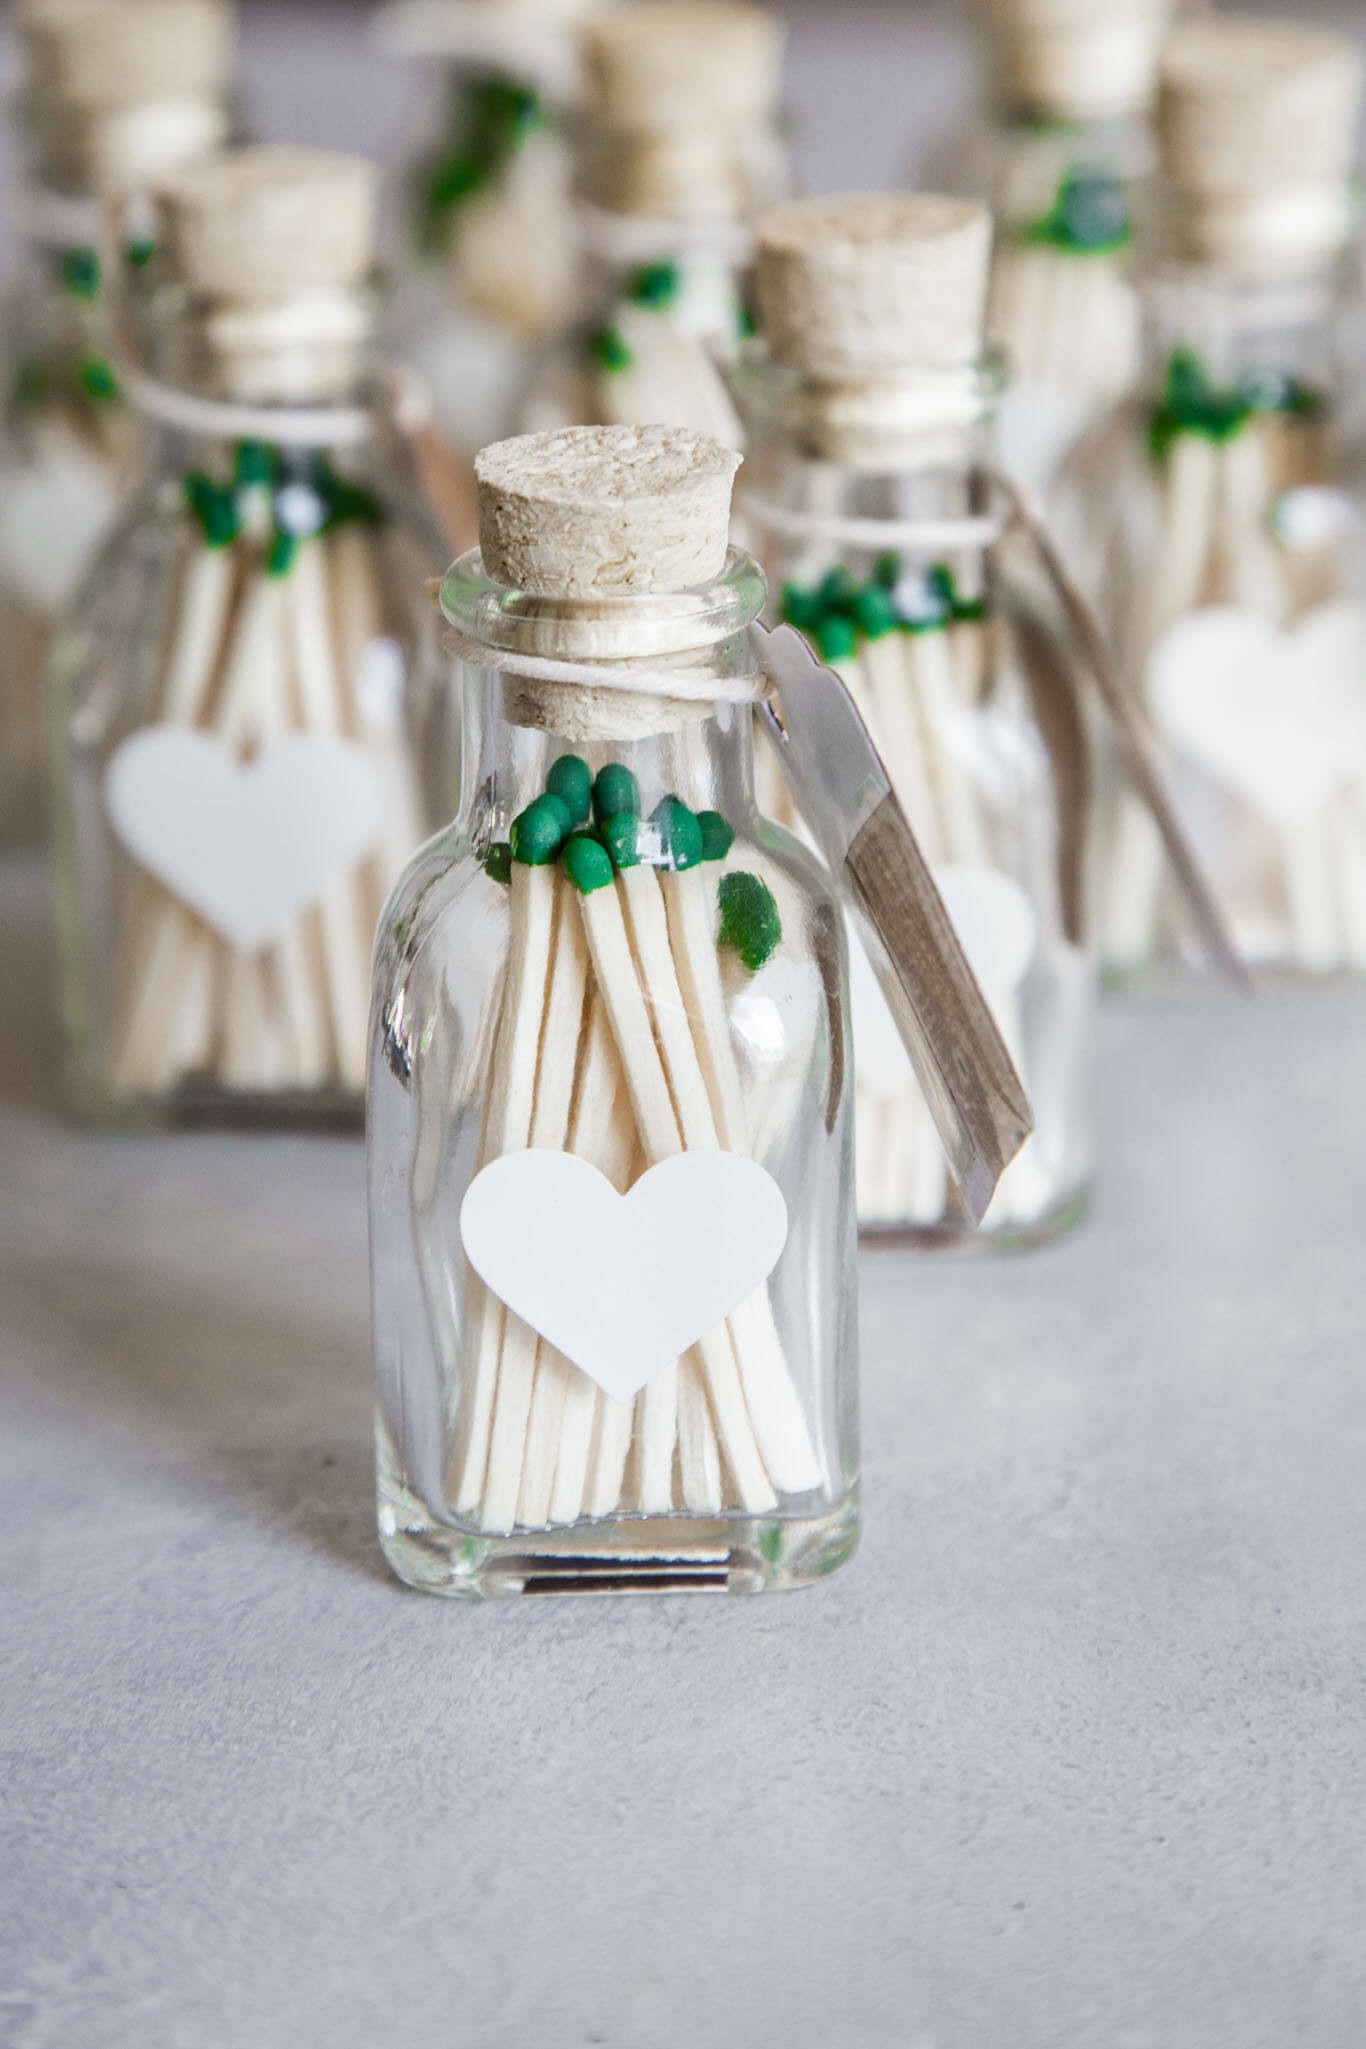 Best ideas about Wedding Favors DIY . Save or Pin Wedding Matches DIY Wedding Favors Now.